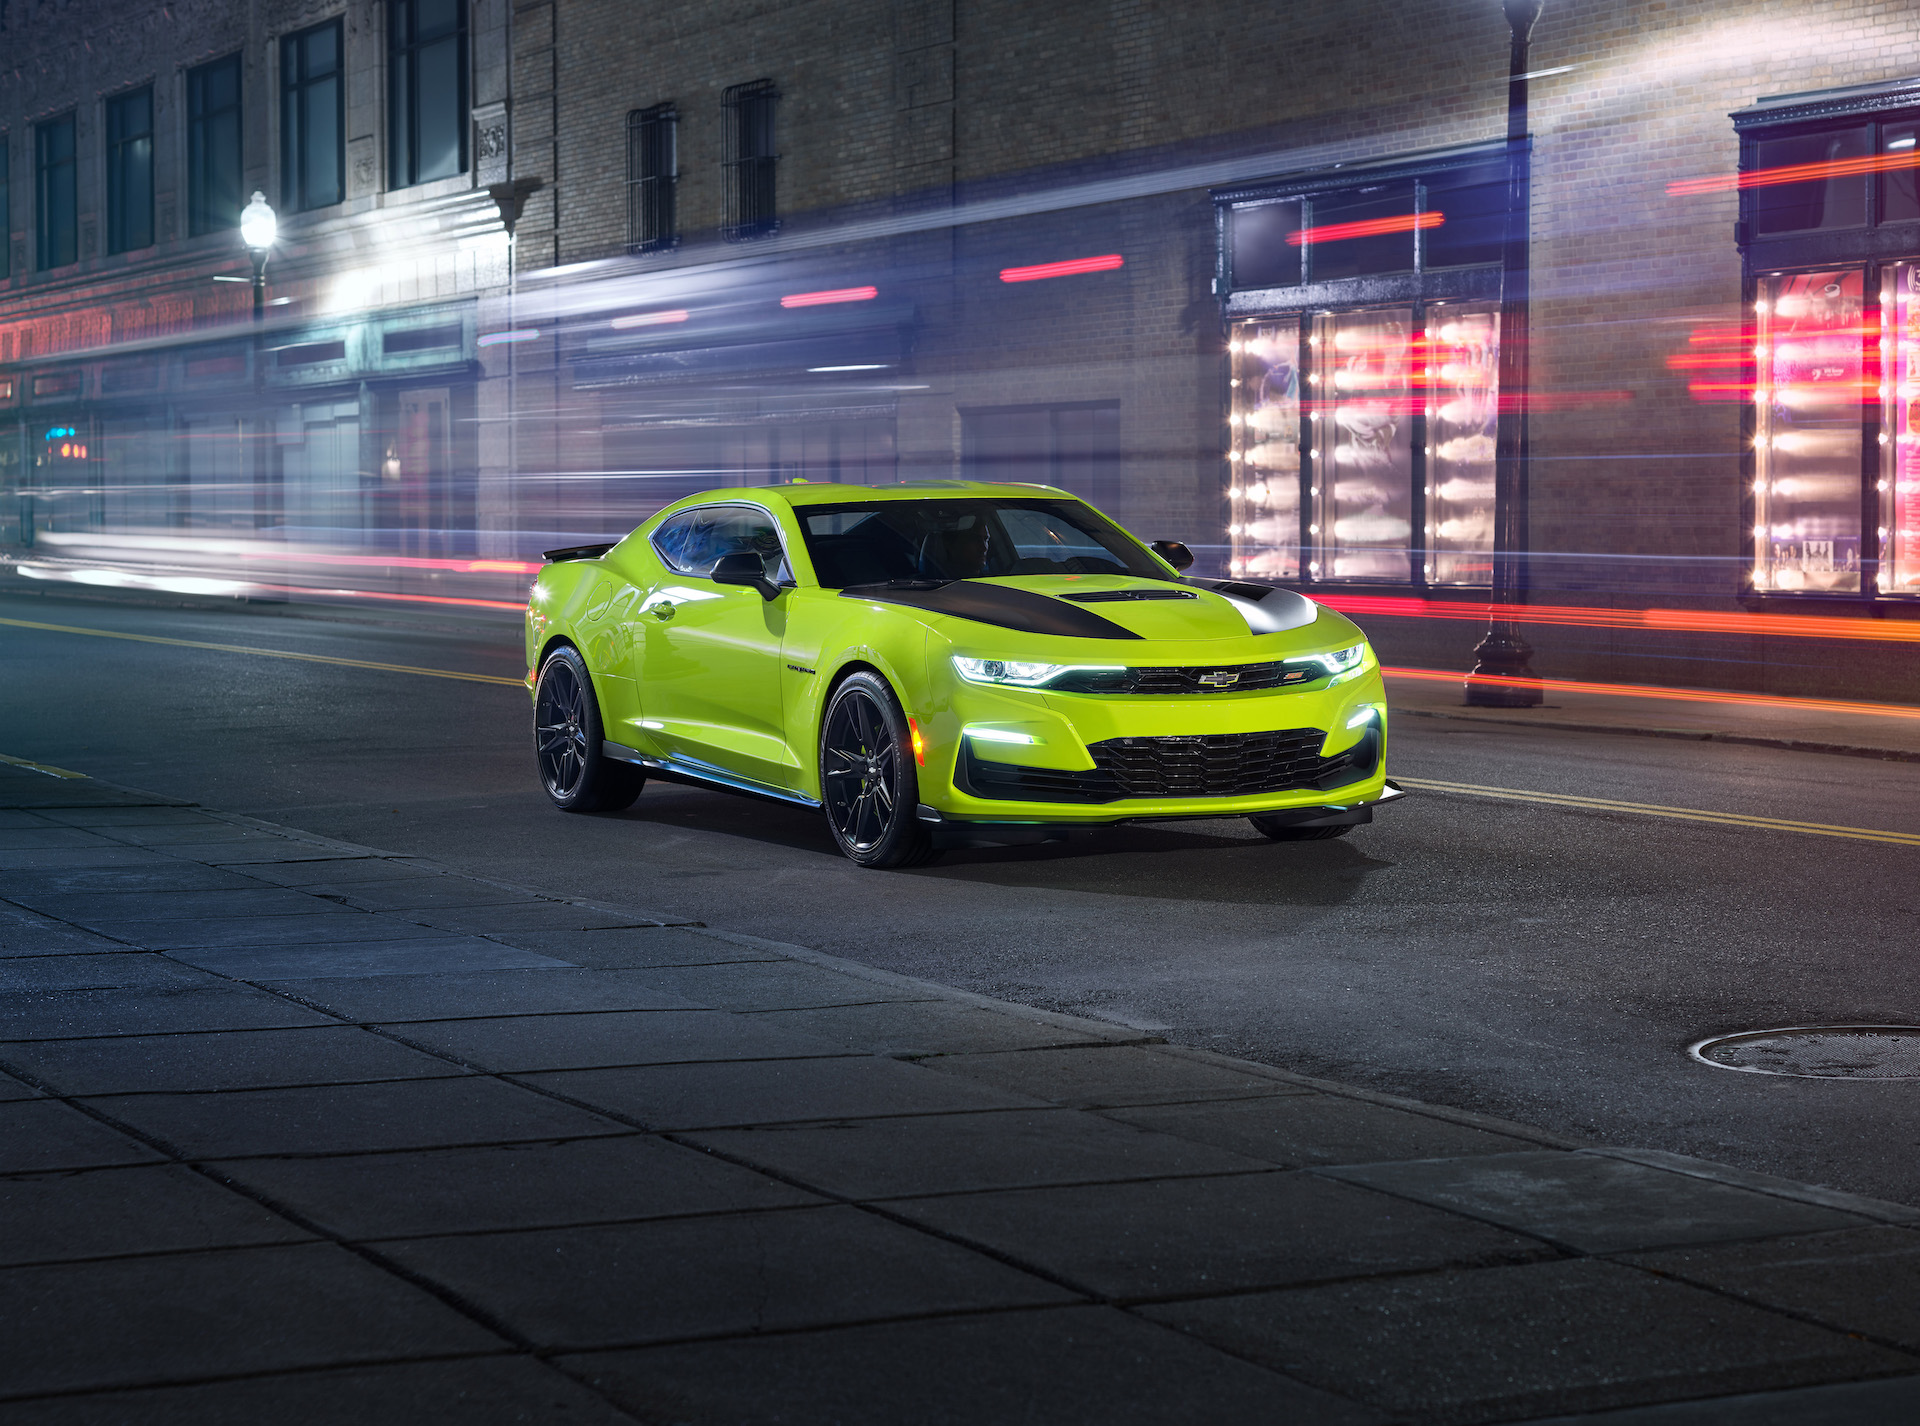 2019 Chevrolet Camaro gains new Shock yellow color option